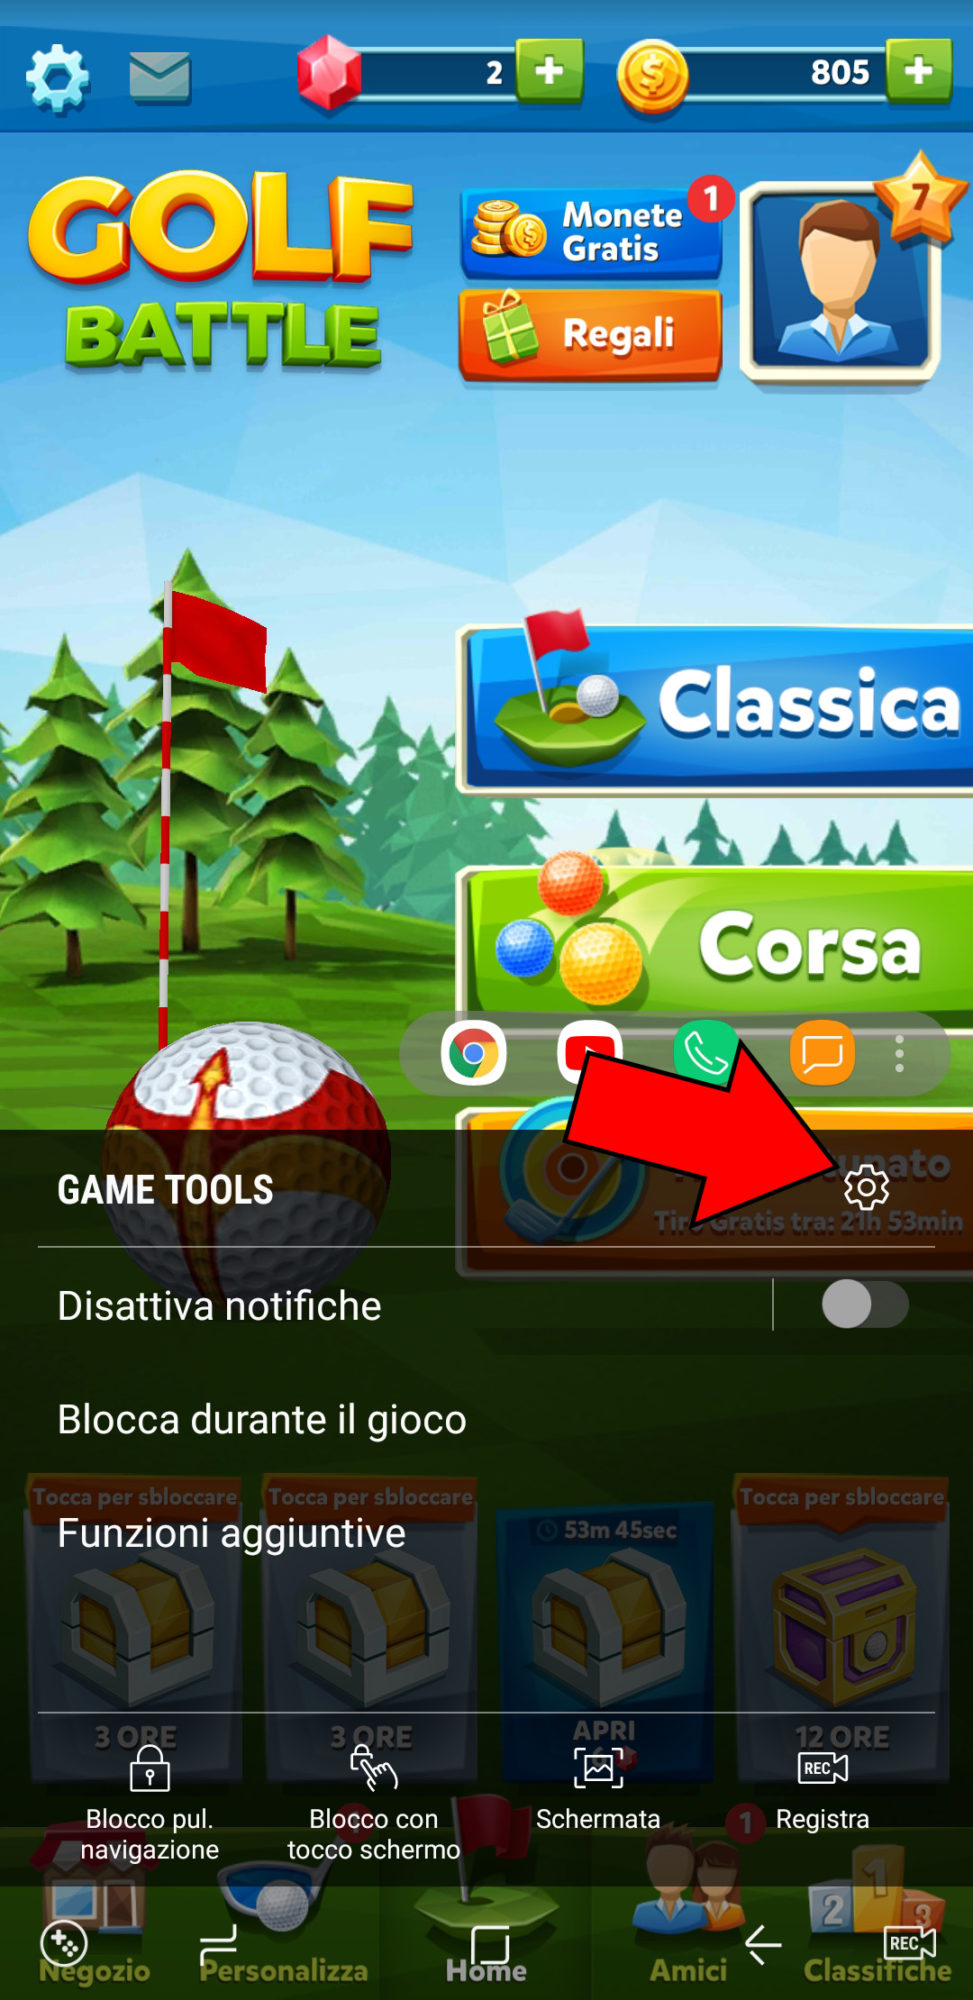 Registrare_Gameplay_Android_002